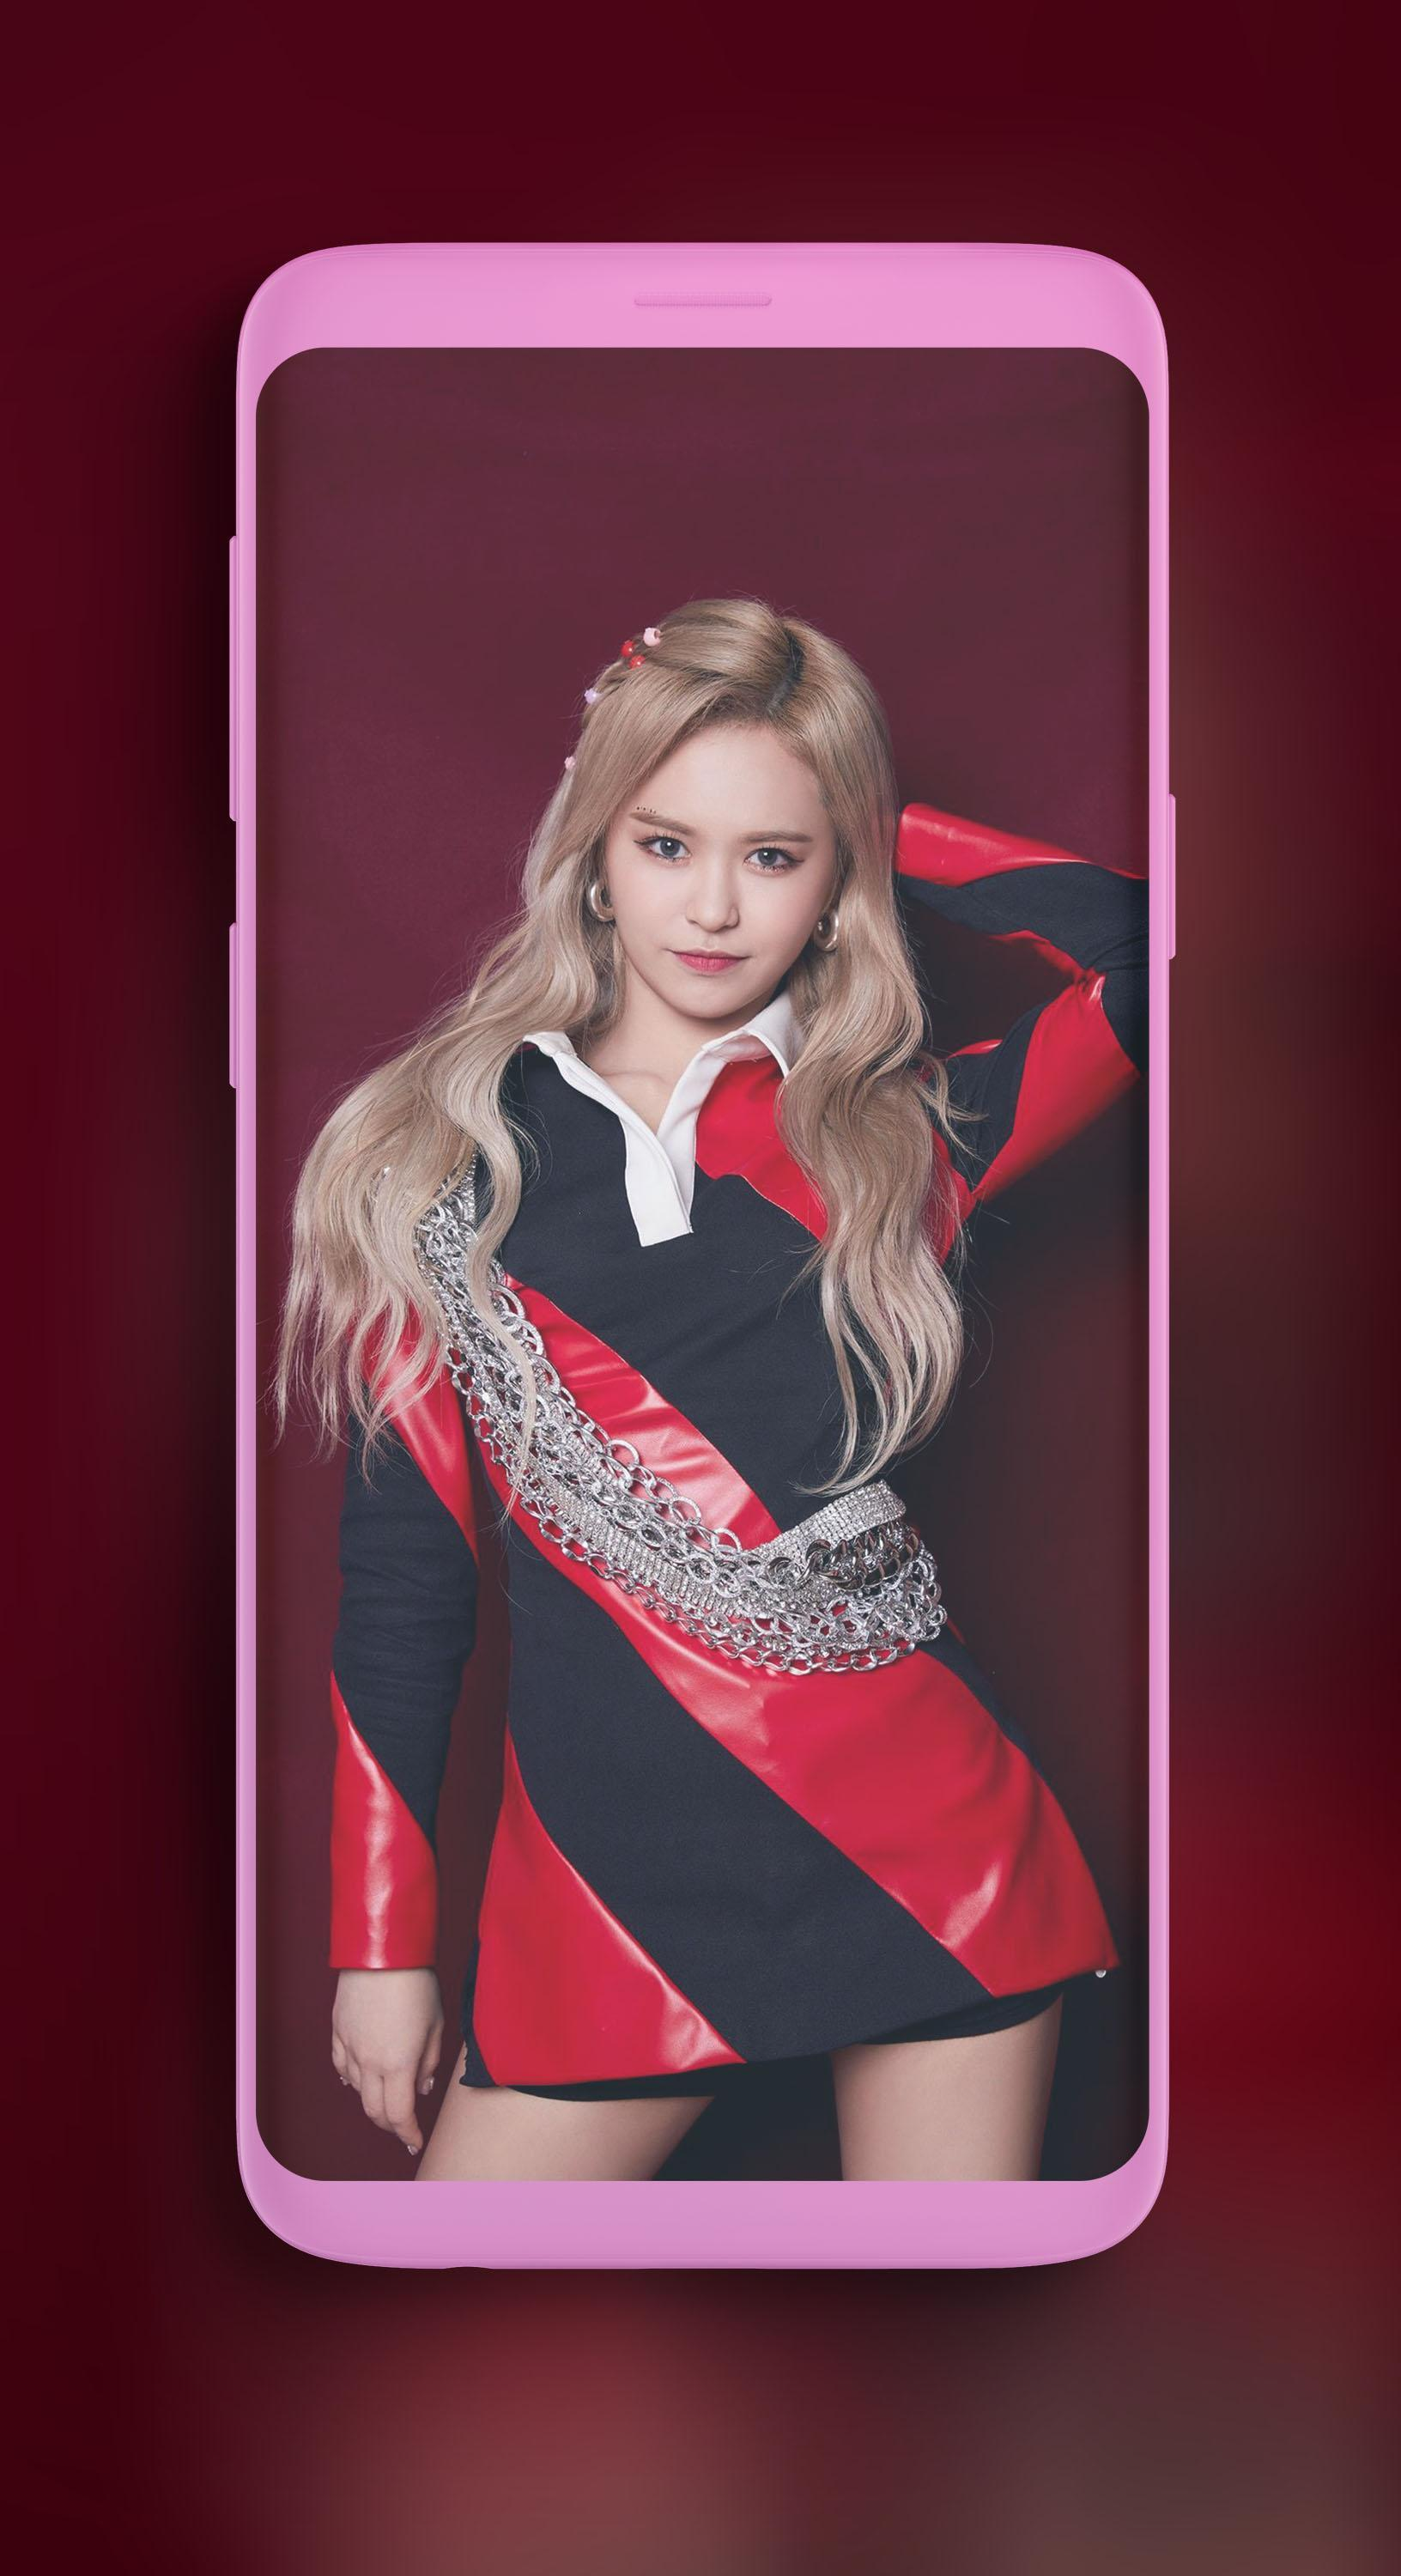 Everglow Eu Wallpaper Kpop Hd New For Android Apk Download